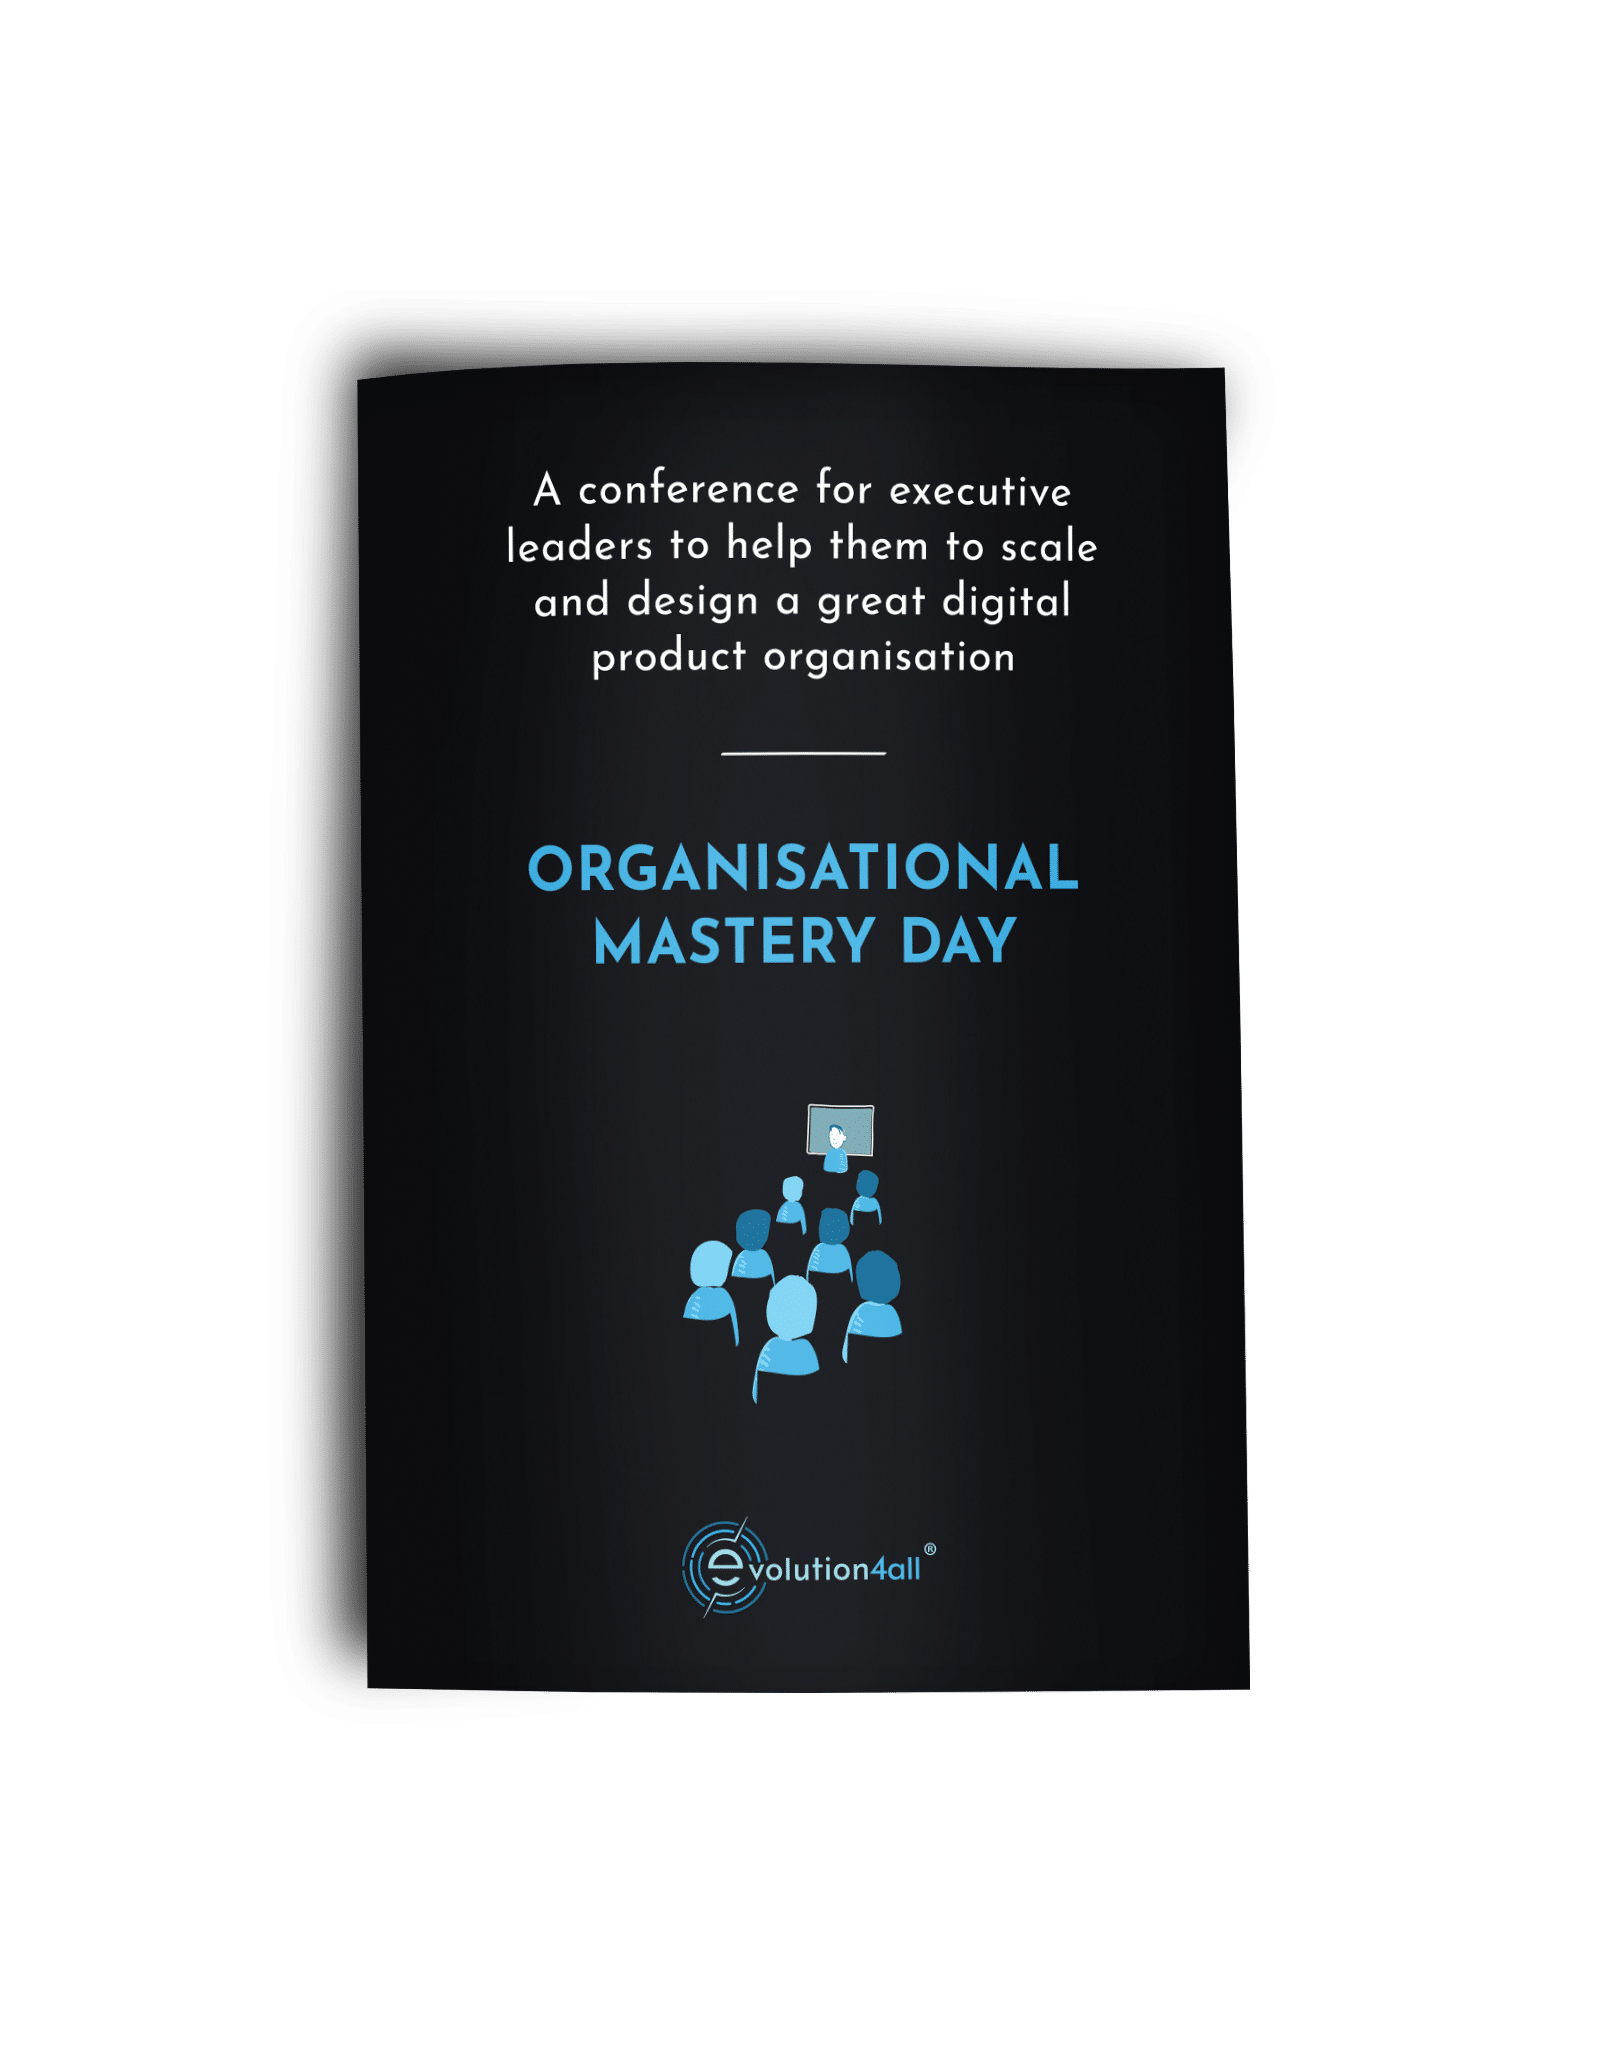 ORGANISATIONAL MASTERY DAY